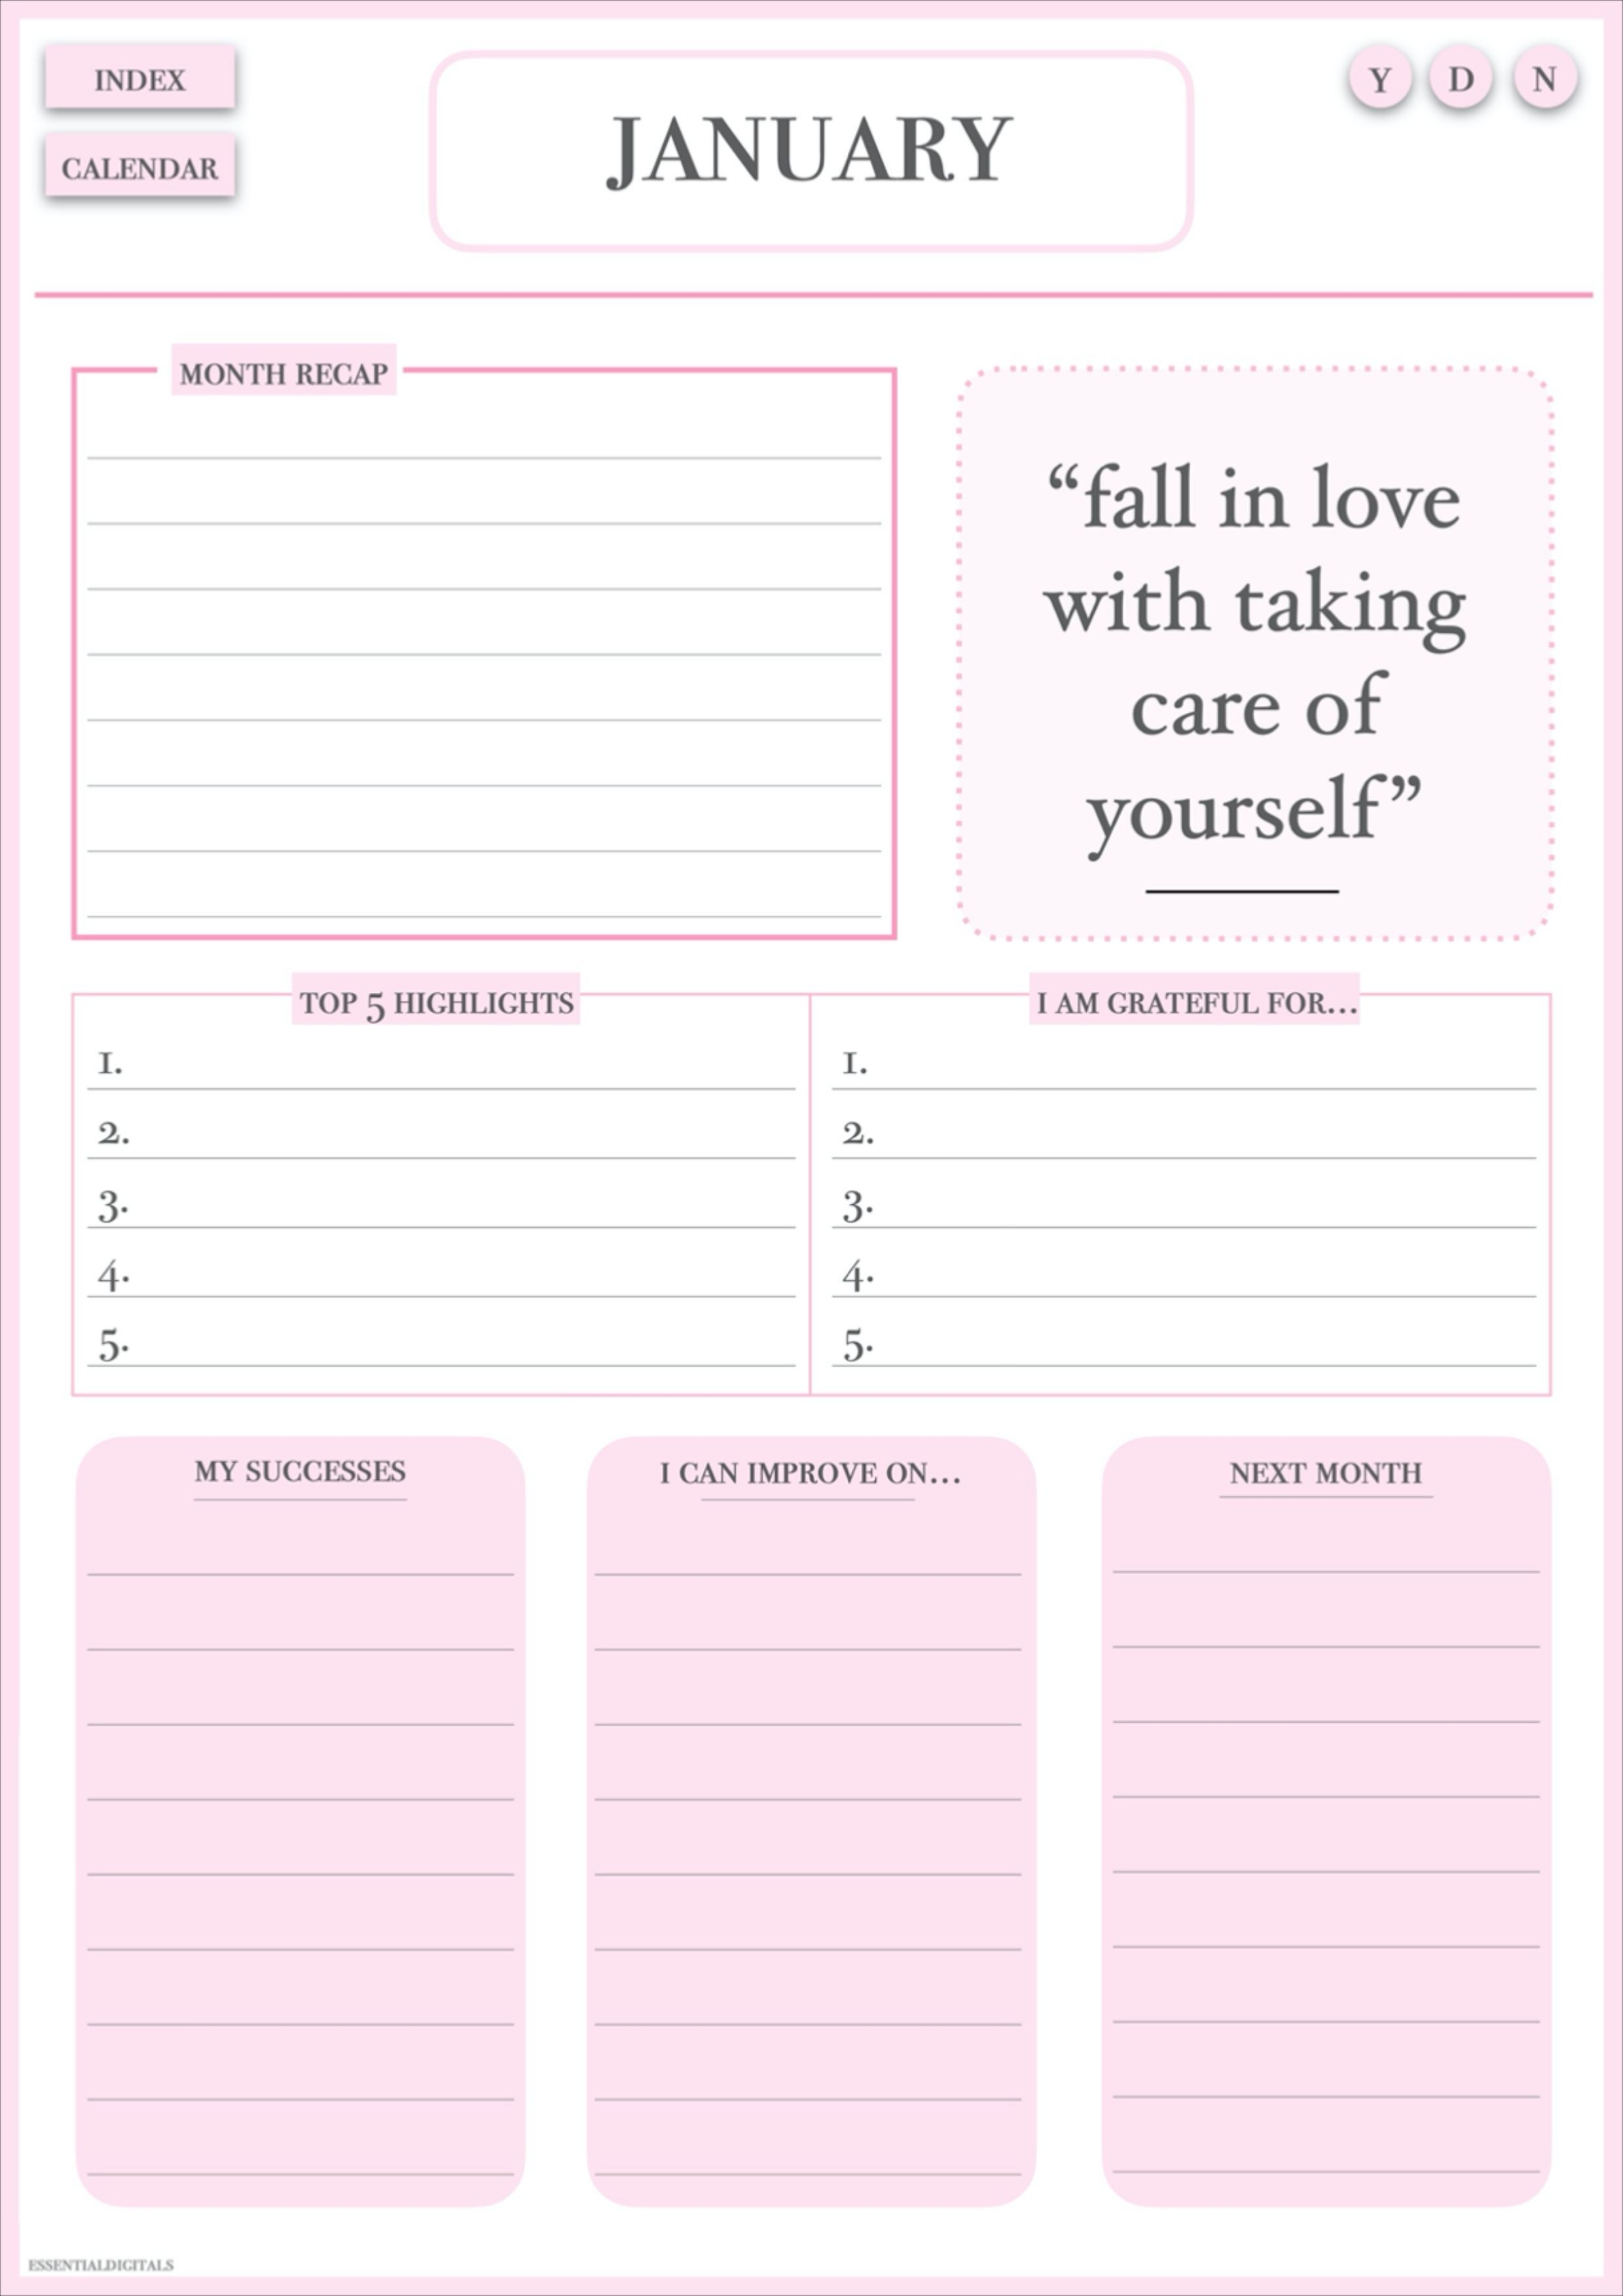 Daily Reflection Journal Self Reflection Goal Planner Digital Inserts Daily Reflection Gratitude Journal Prompts Therapy Journal